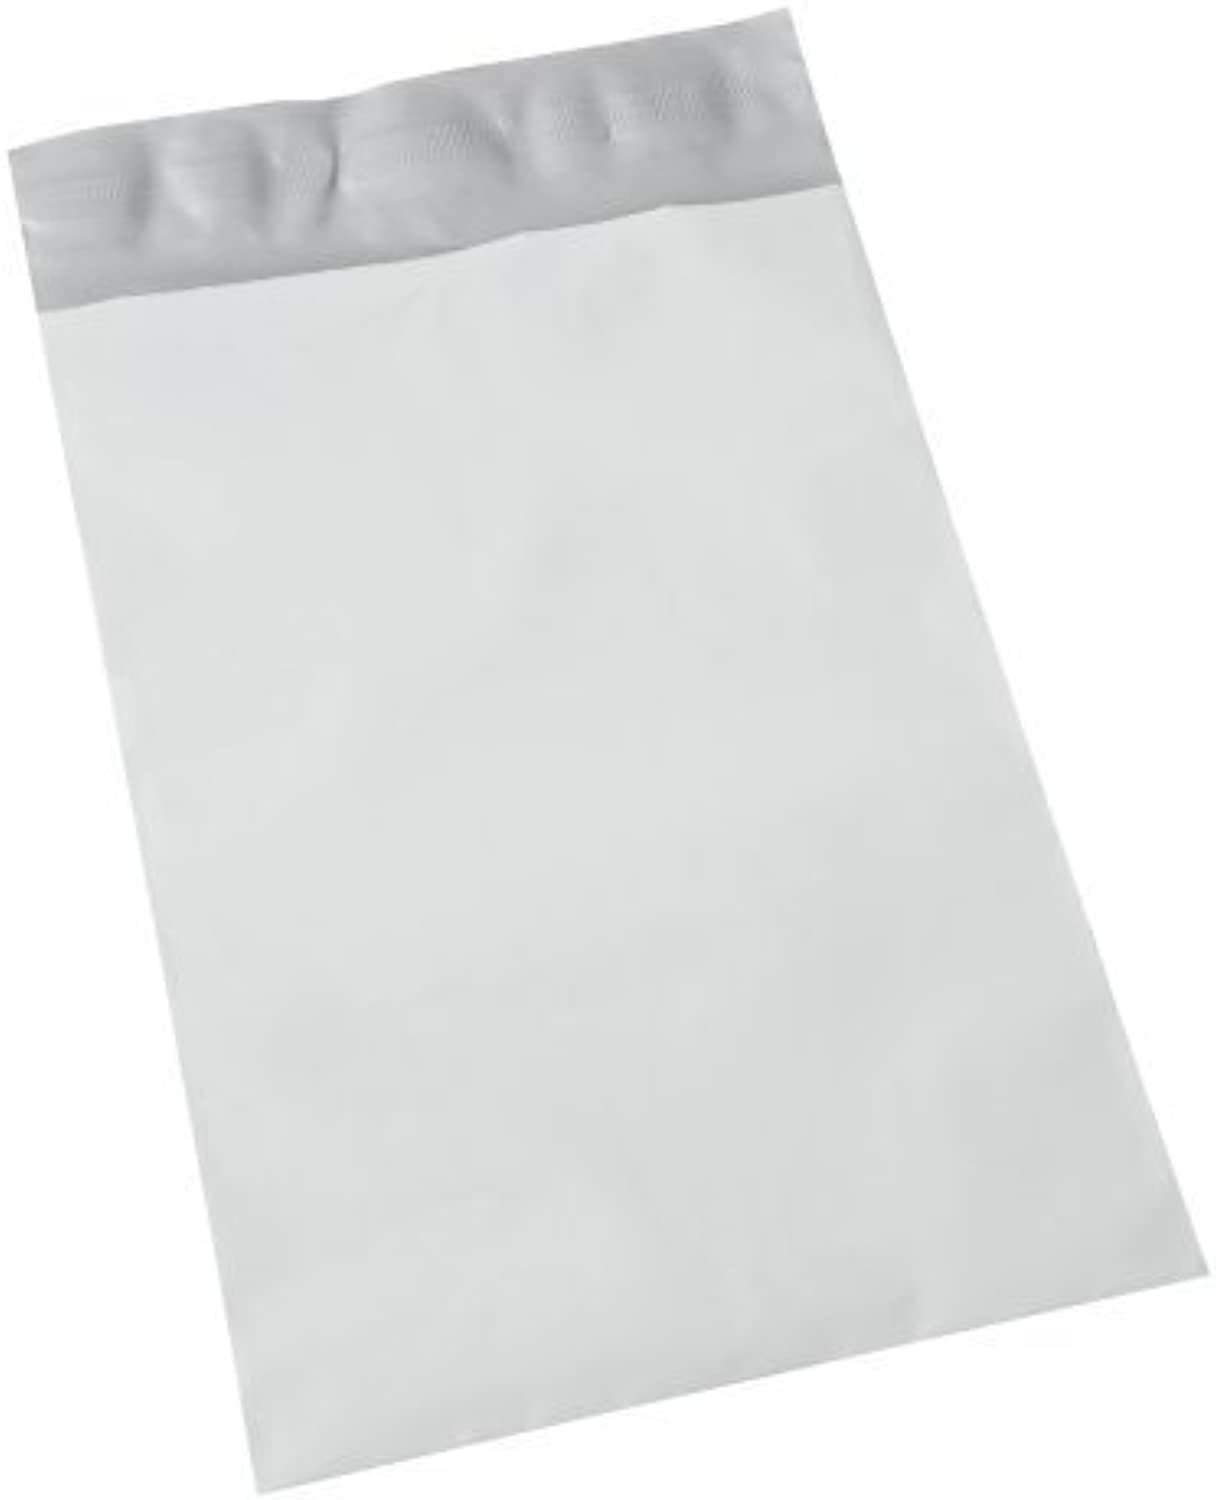 400 400 400 EcoSwift Größe  2 7.5 x 10.5 Weiß Poly Mailers Self Sealing Bulk Packaging Materials Shipping Supplies Envelopes Bags 7.5 inches by 10.5 inches by EcoSwift B018OQABQE    | Gemäßigten Kosten